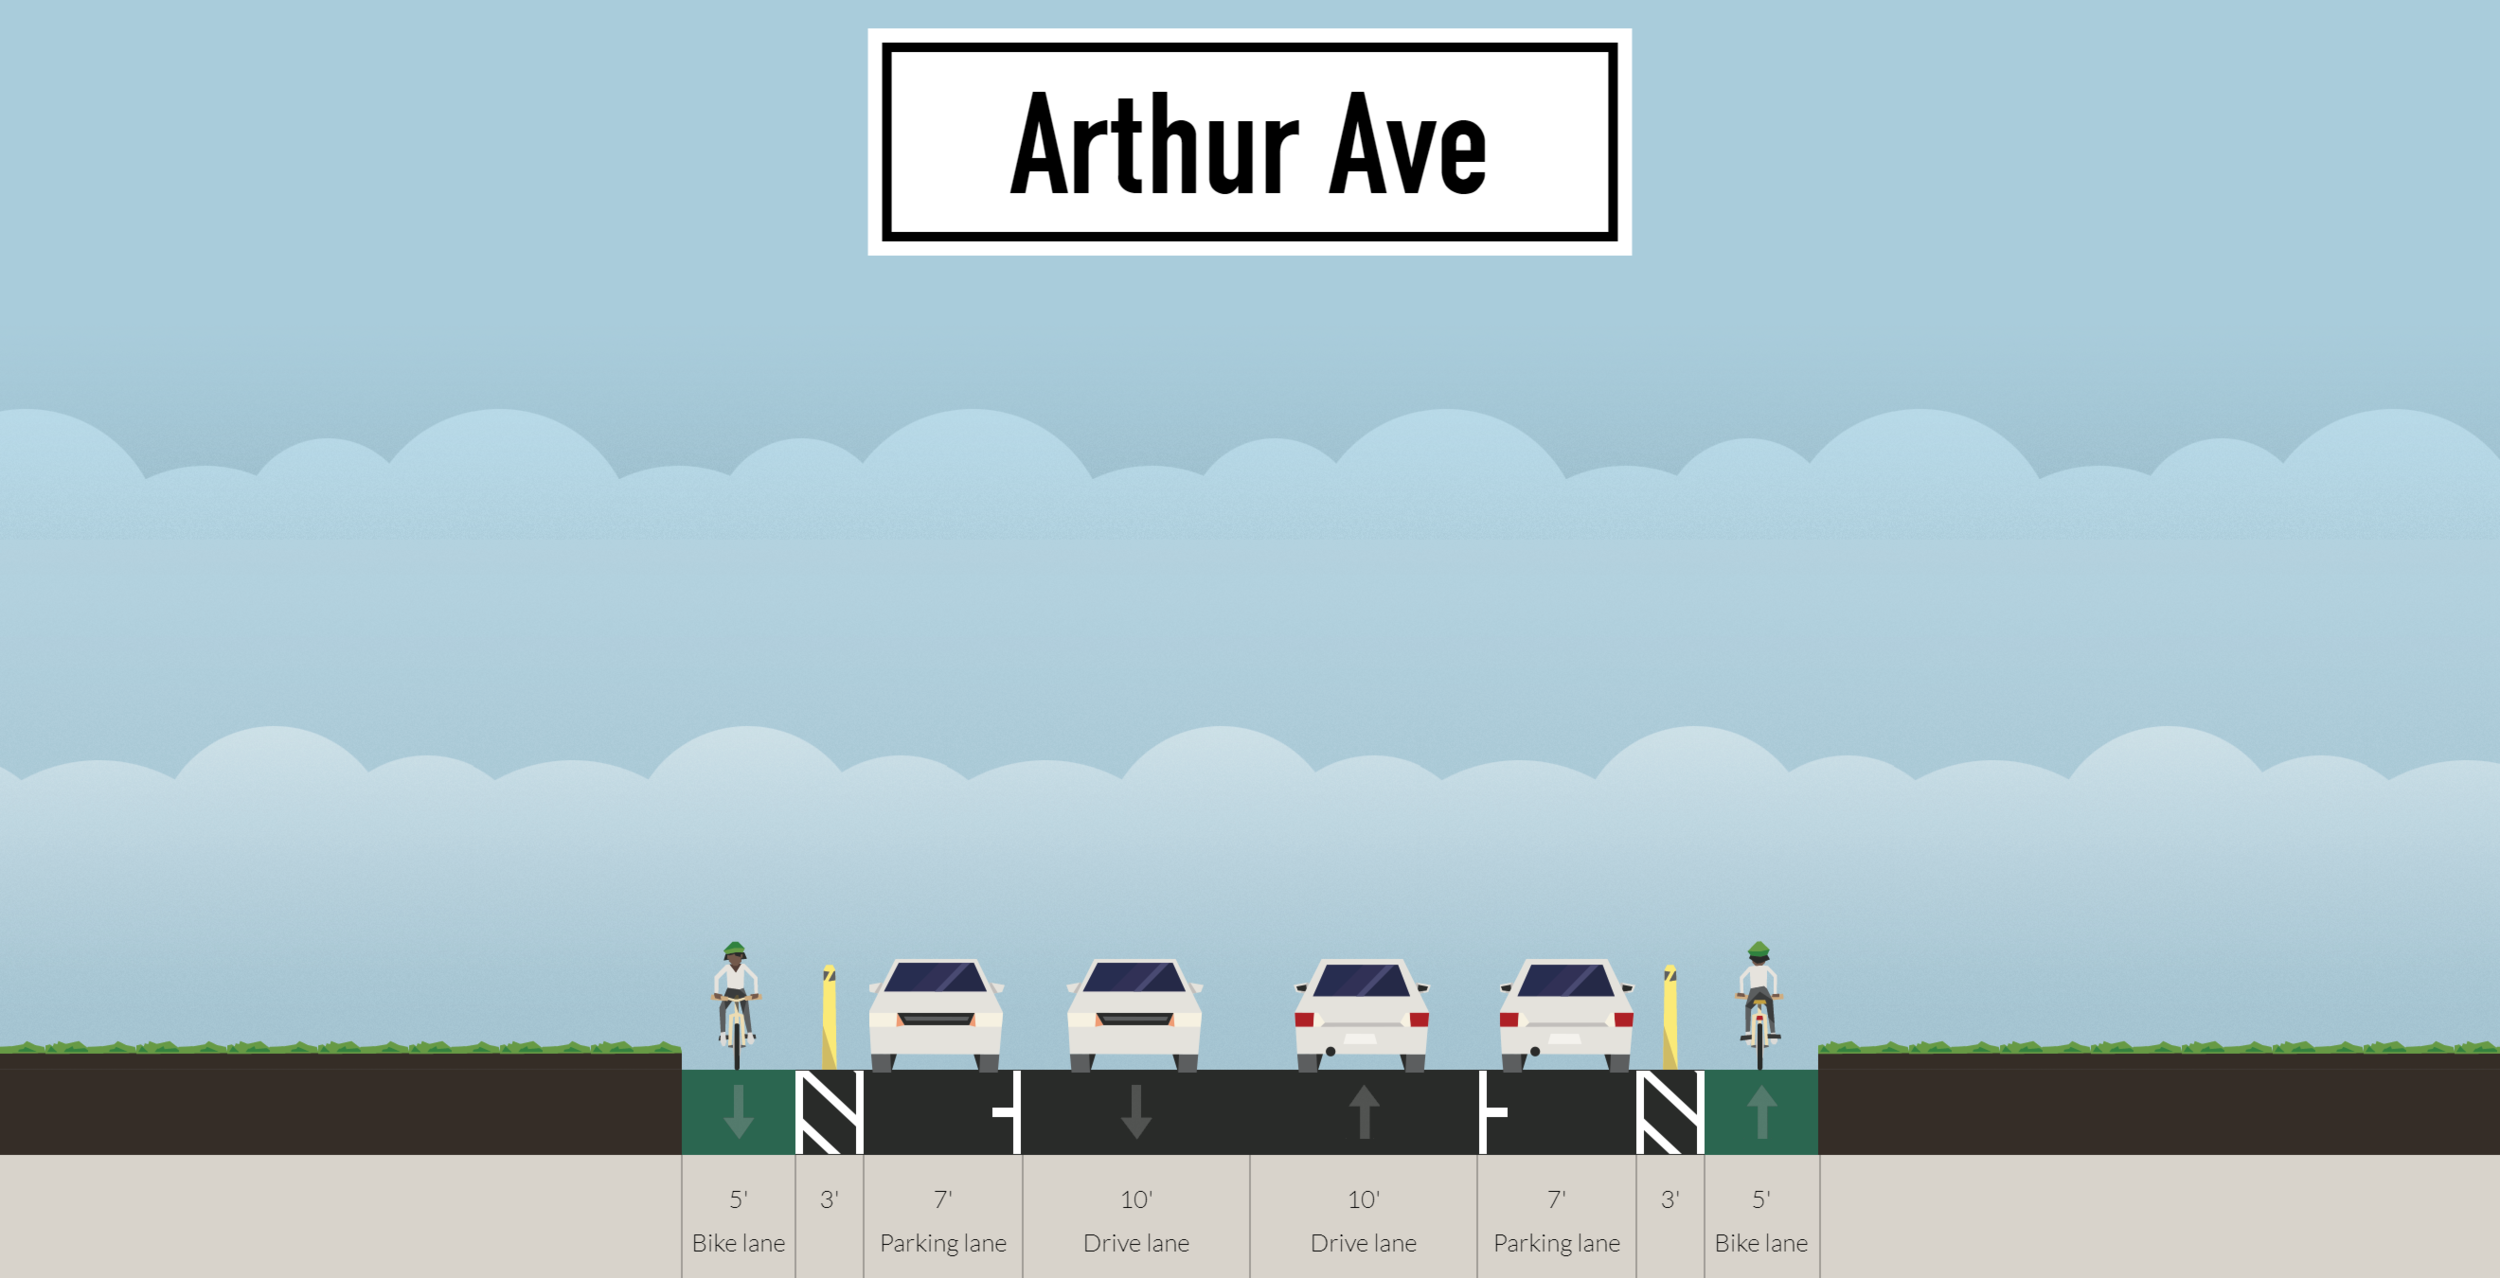 Travel lane section for Arthur Ave